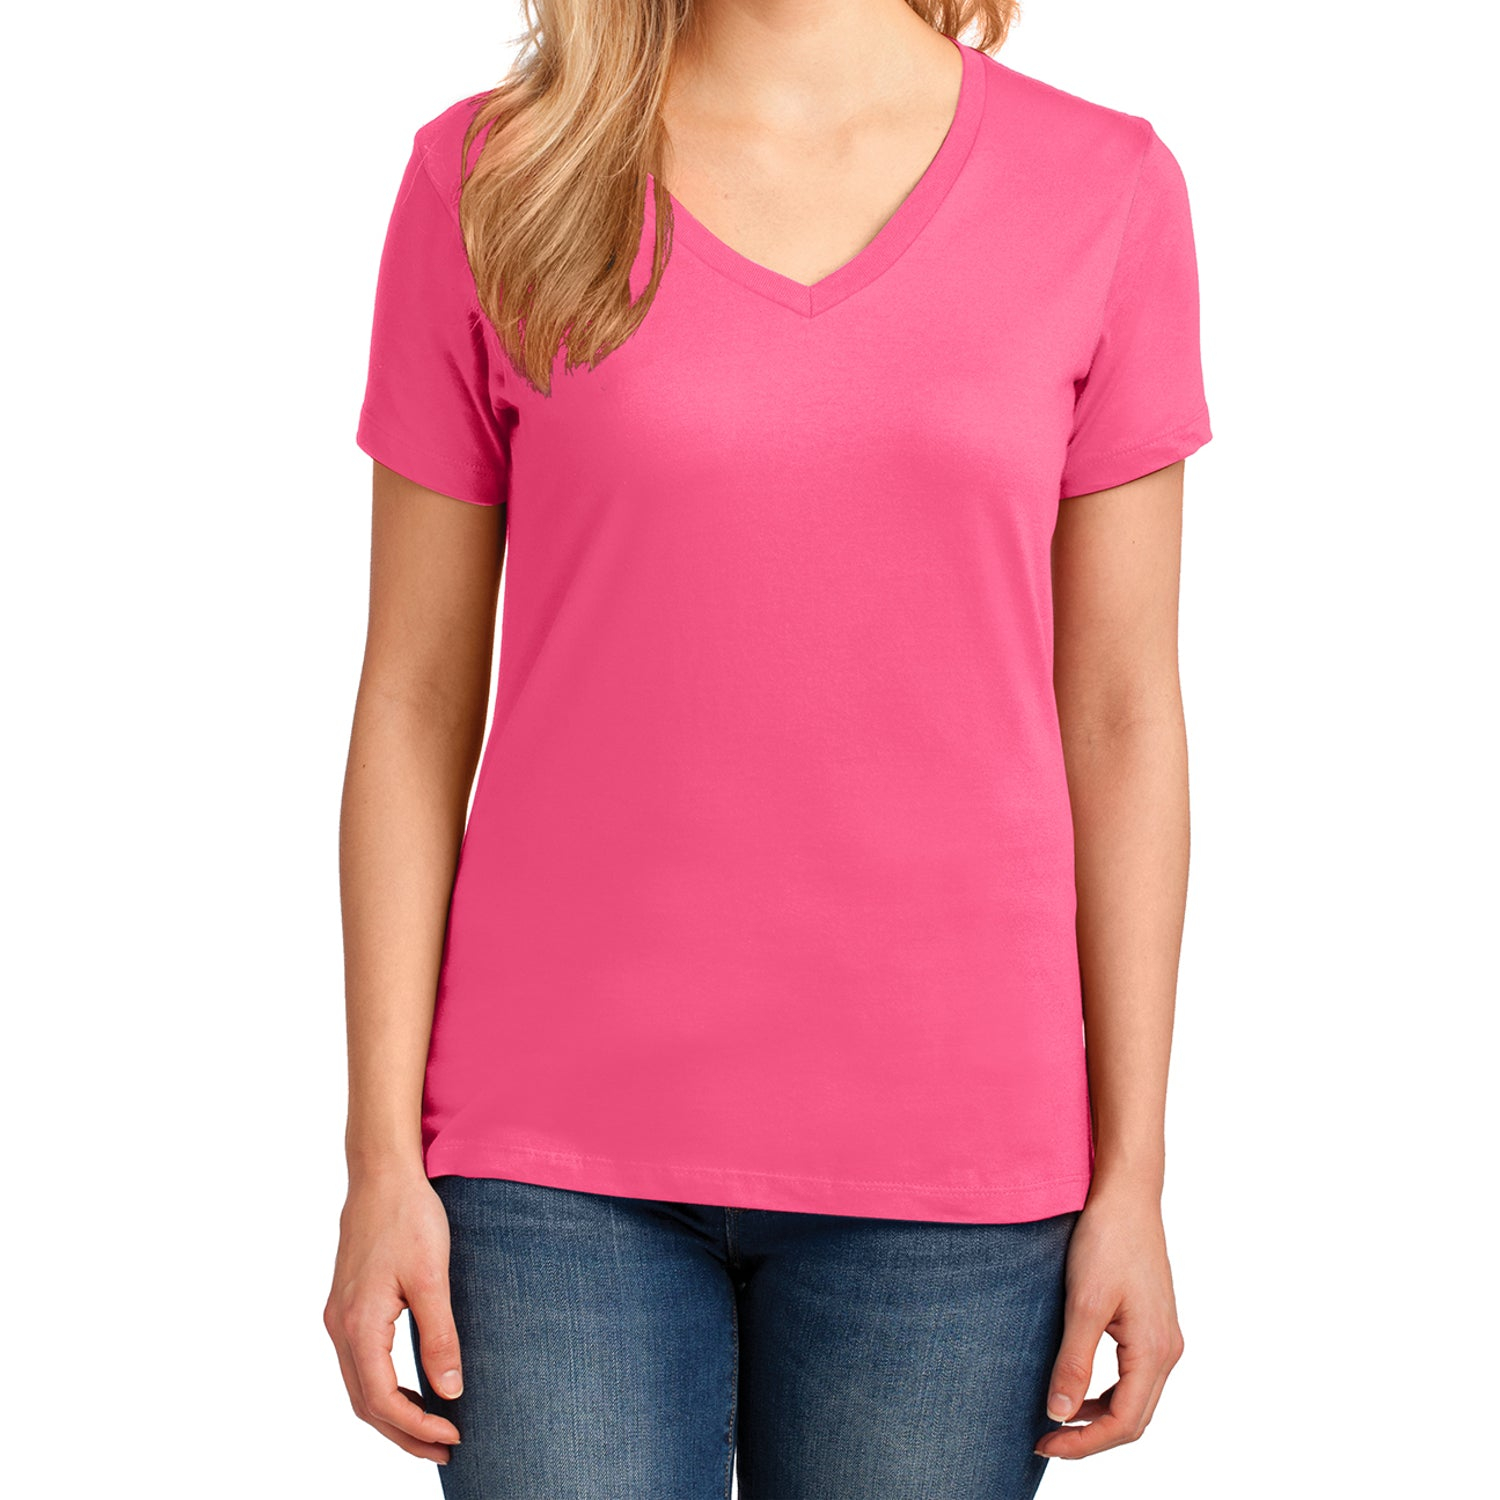 Women's Core Cotton V-Neck Tee - Neon Pink - Front